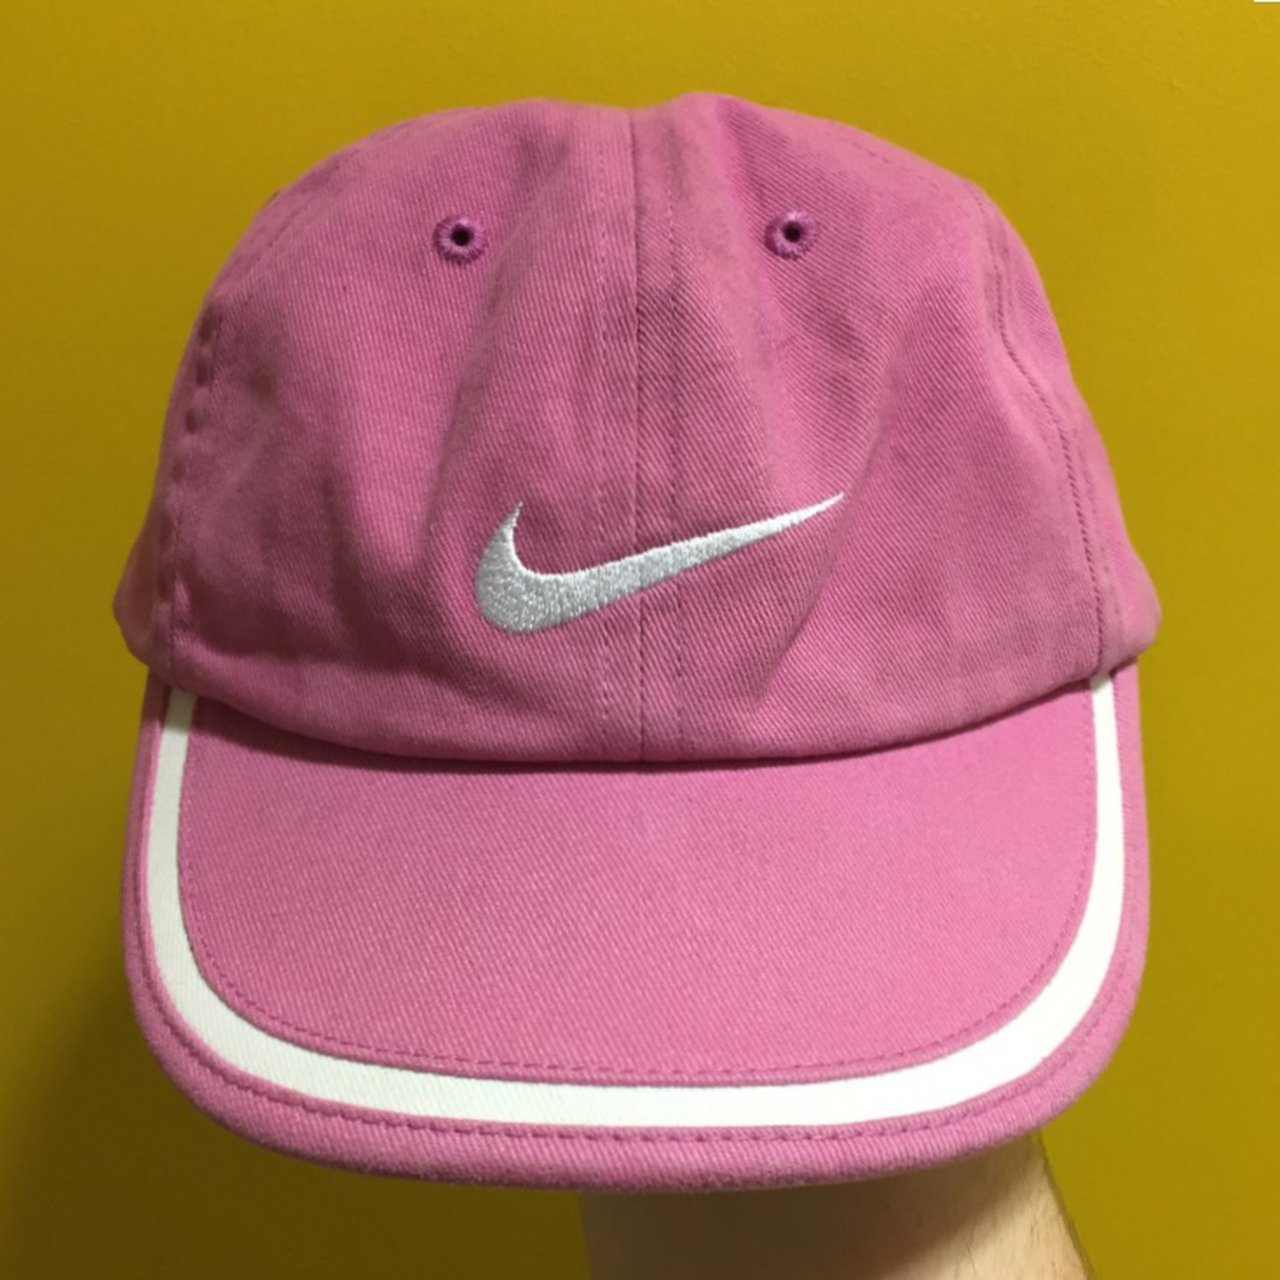 6d63d2f5e3bc4 🏁 Baby pink Nike cap 🏁 10 10 condition 🏁 Size  s m strap - Depop